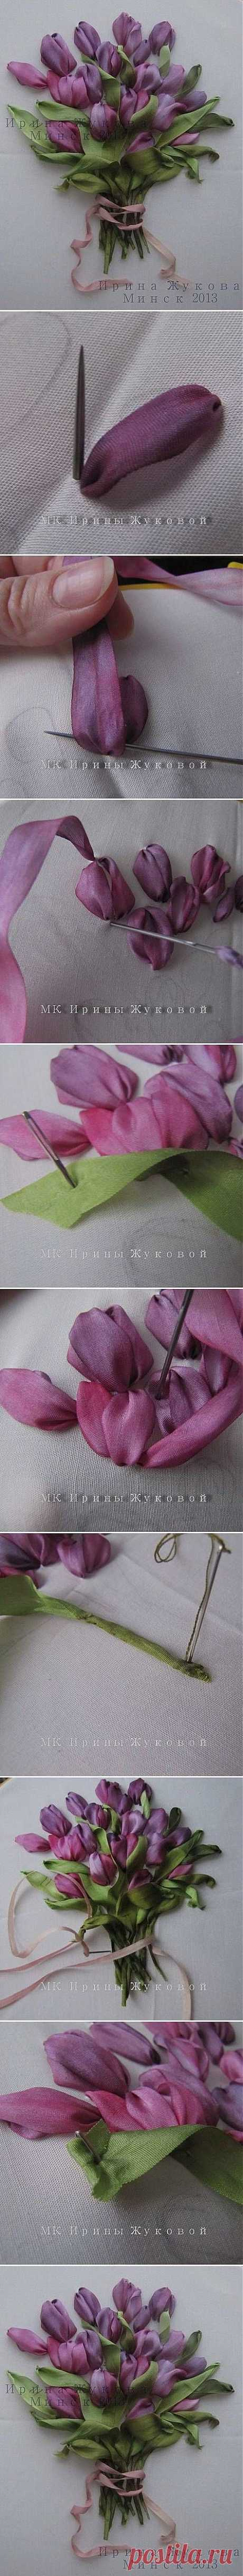 DIY Embroidery Ribbon Flower | Embroidery